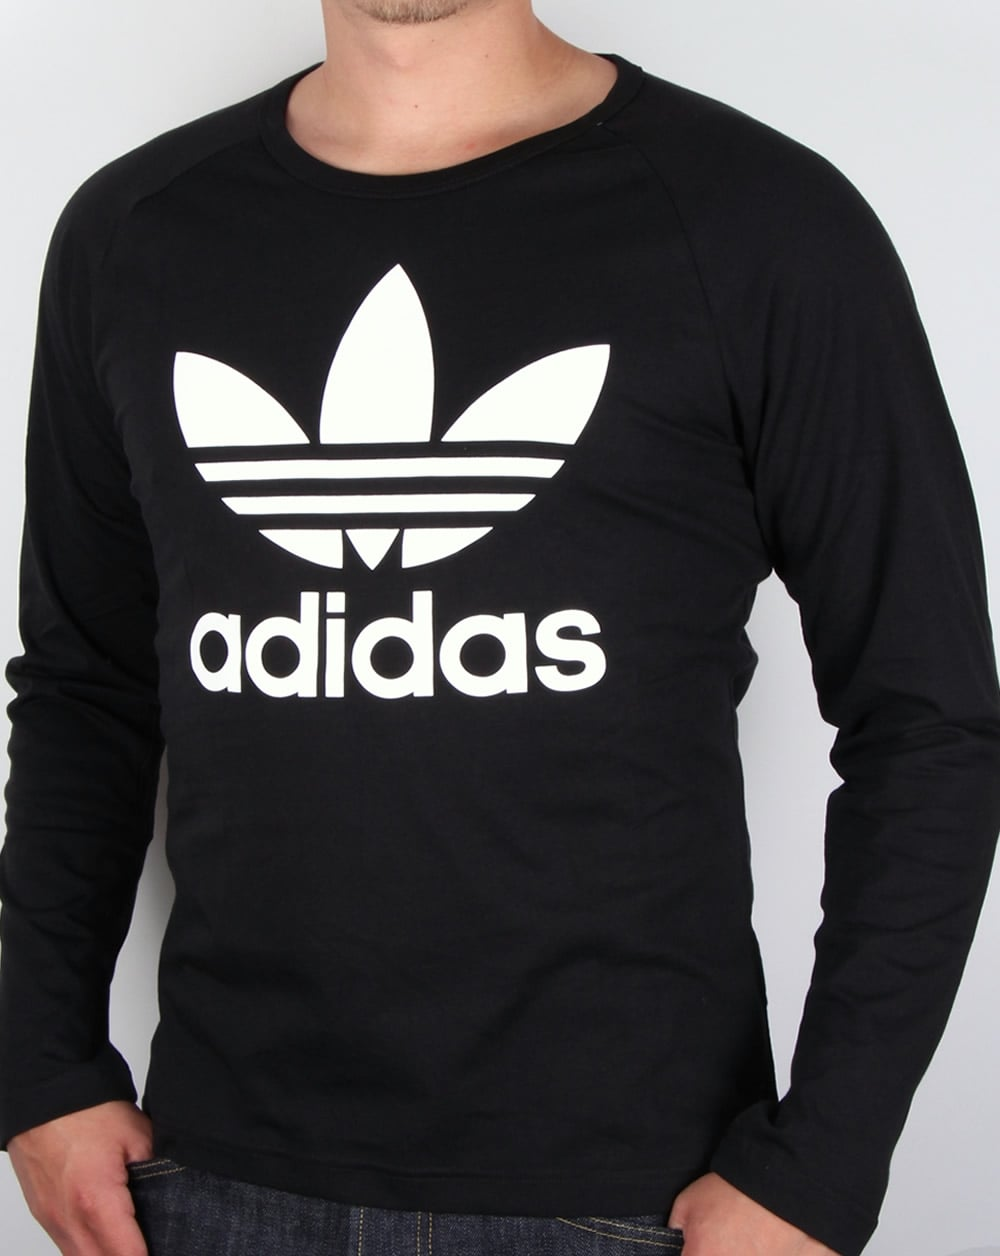 adidas originals trefoil long sleeve t shirt black tee mens. Black Bedroom Furniture Sets. Home Design Ideas